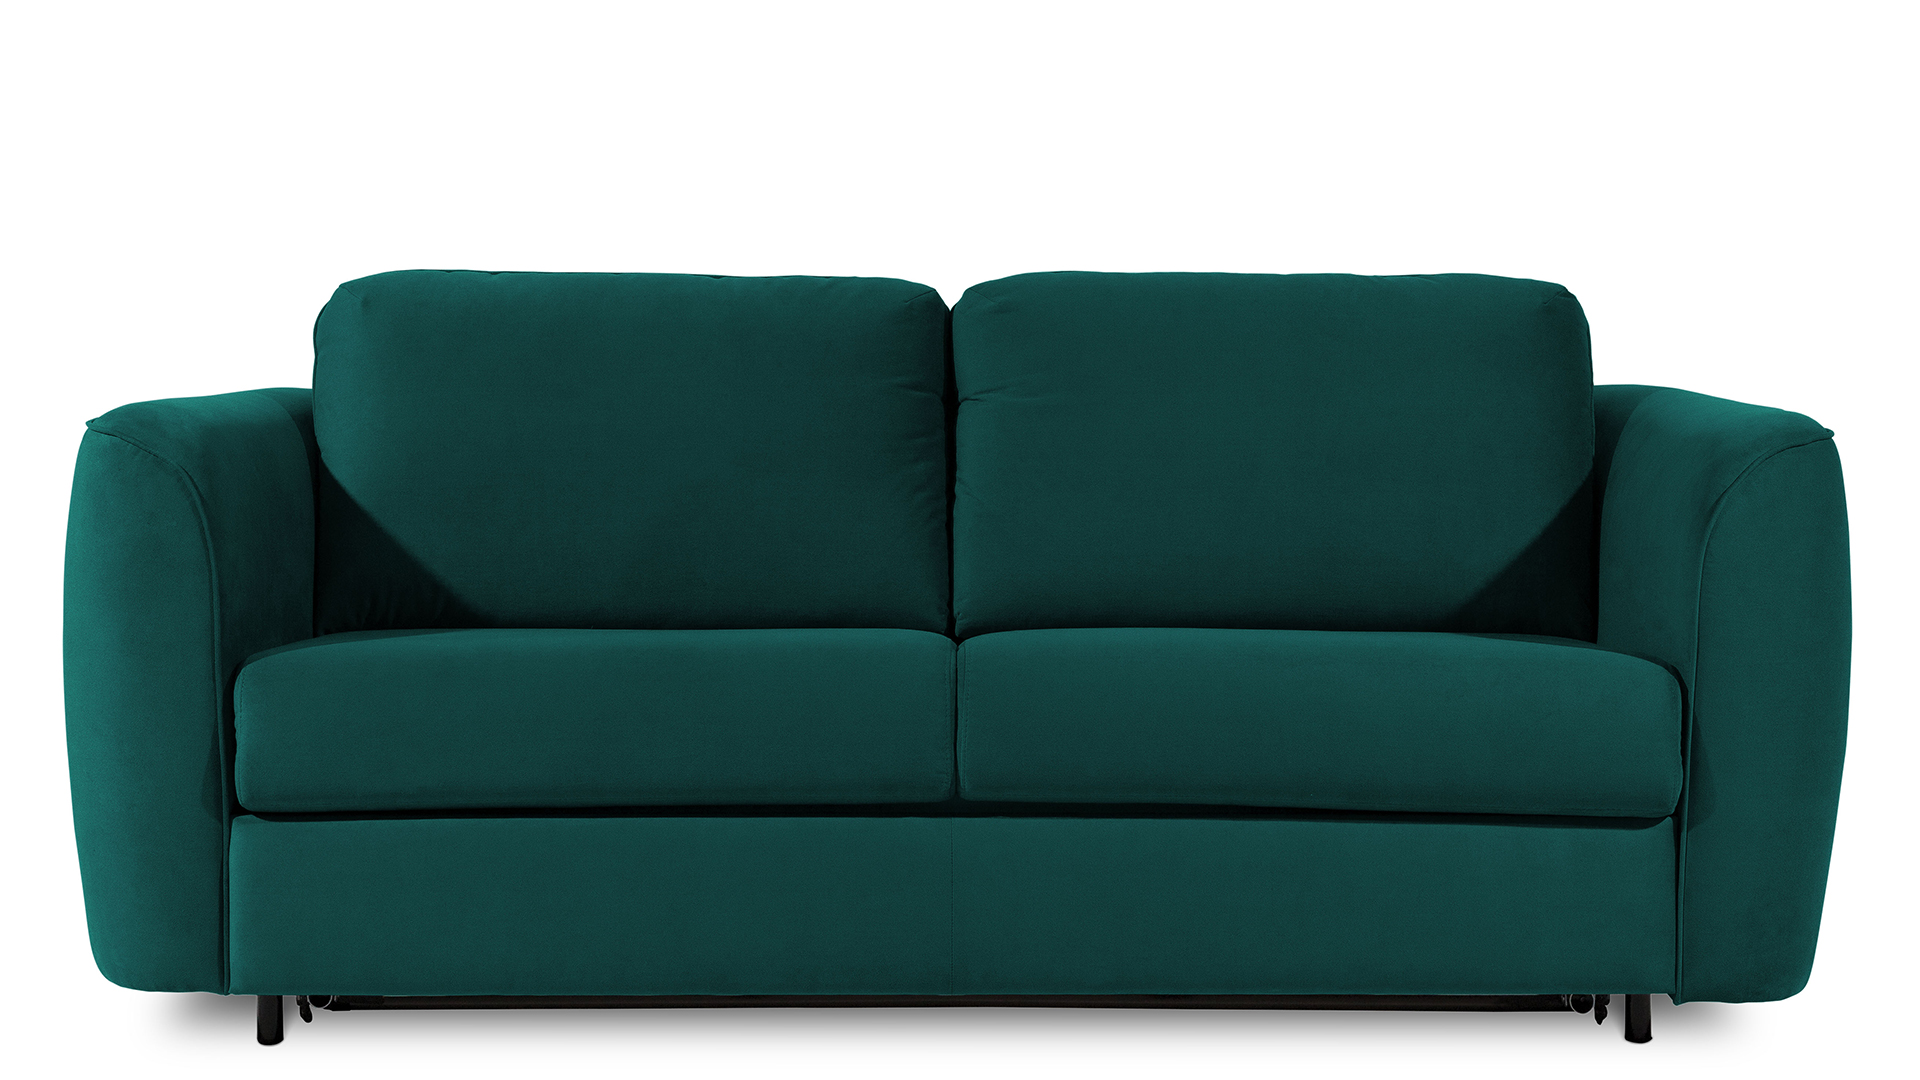 Sofa with sleeping function Cali 140